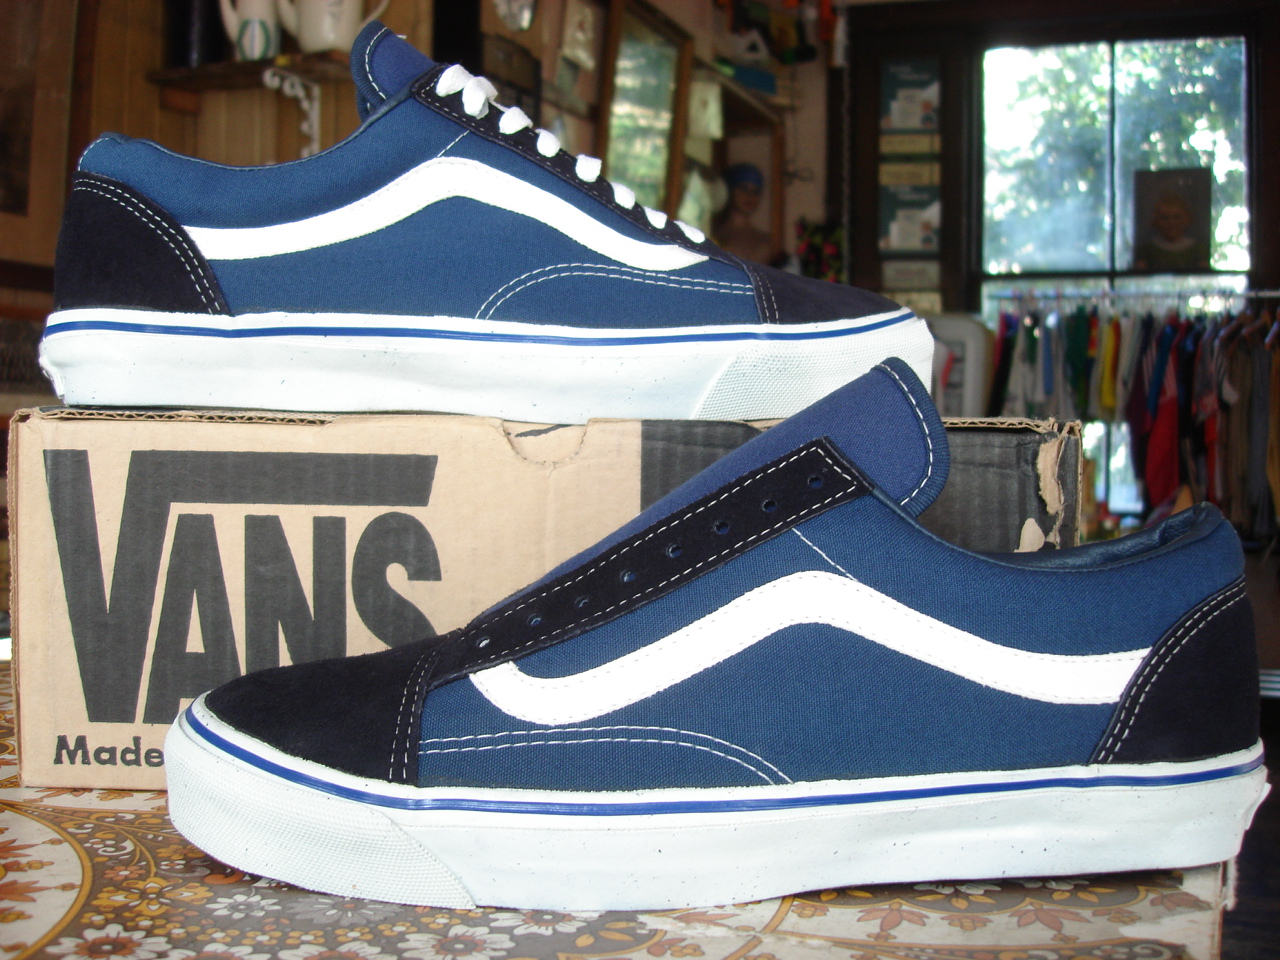 8b7c66af89 Buy vans old skool original navy